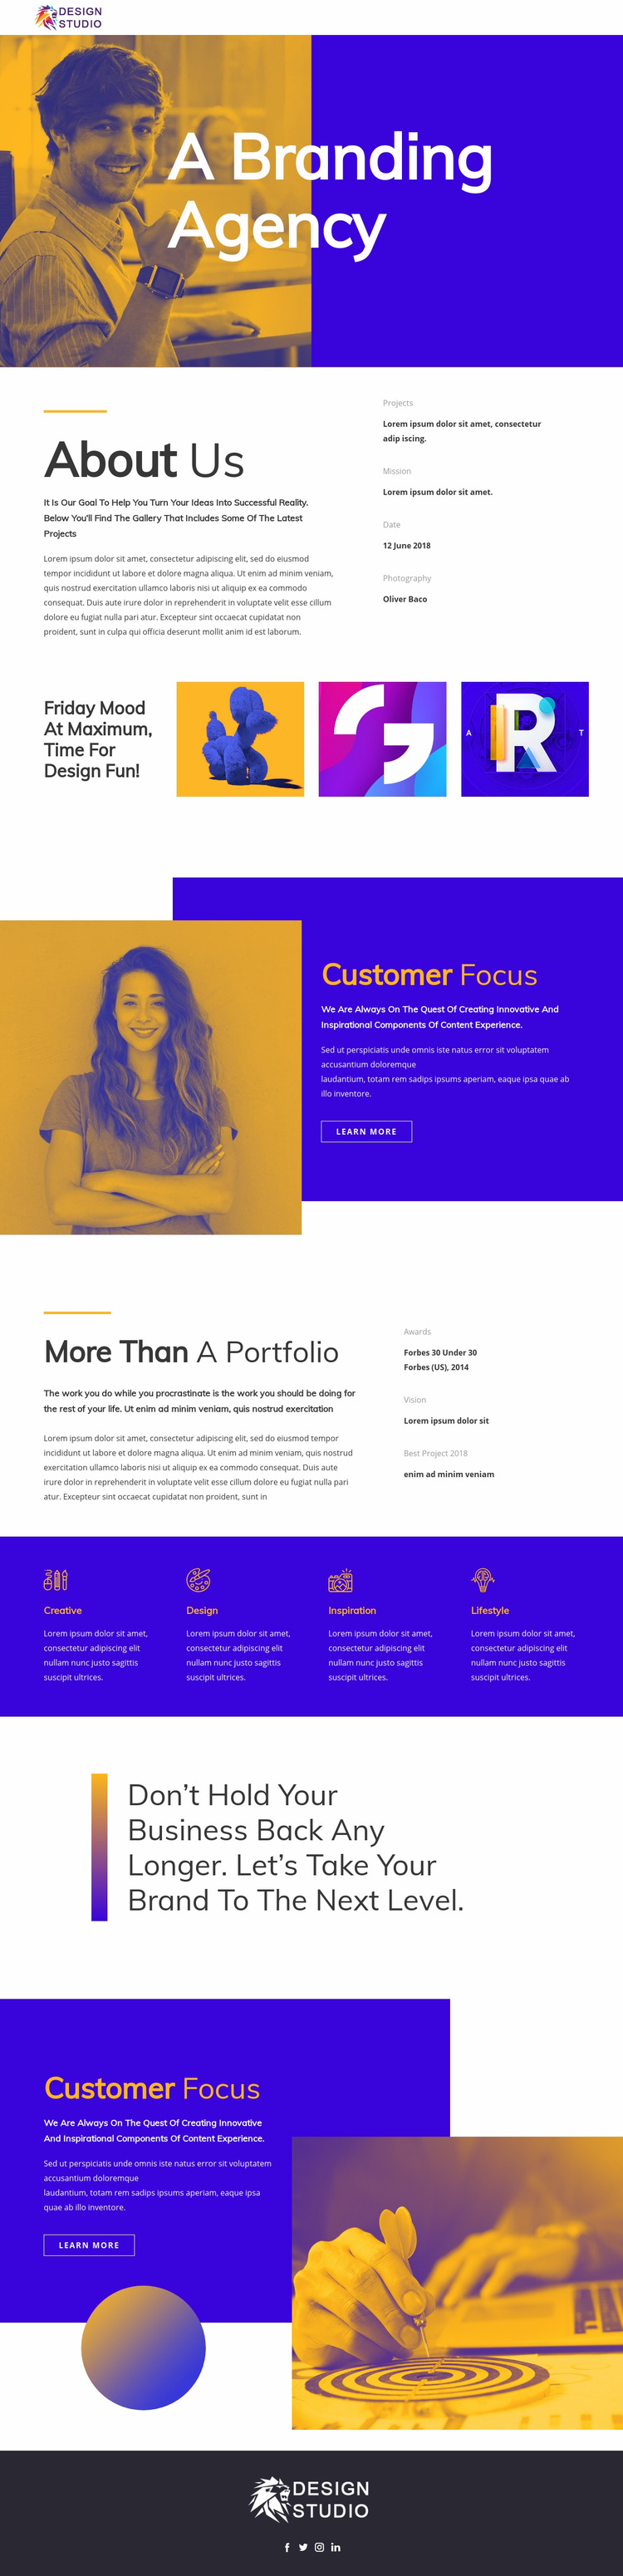 Branding agency for startup Web Page Design